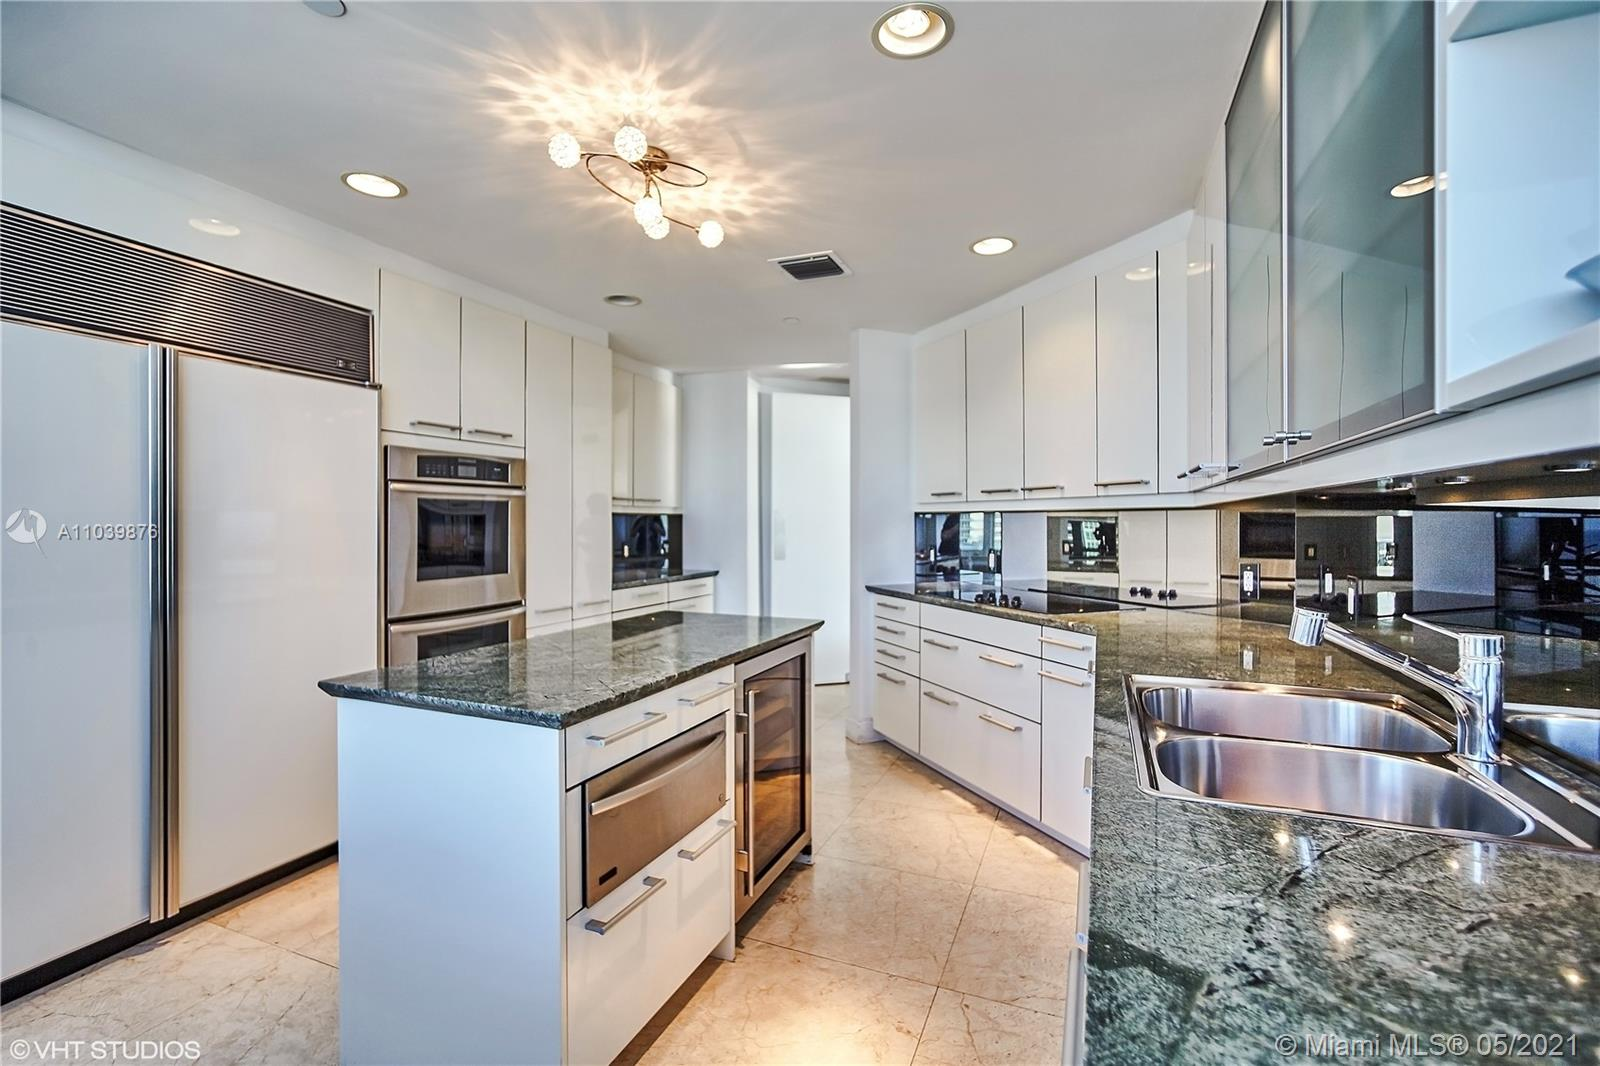 Photo of 10225 Collins Ave #1703, Bal Harbour, Florida, 33154 - Large dine-in kitchen, fully stocked and equipped with refrigerator and freezer, double ovens, built-in microwave, dishwasher and wine refrigerator.